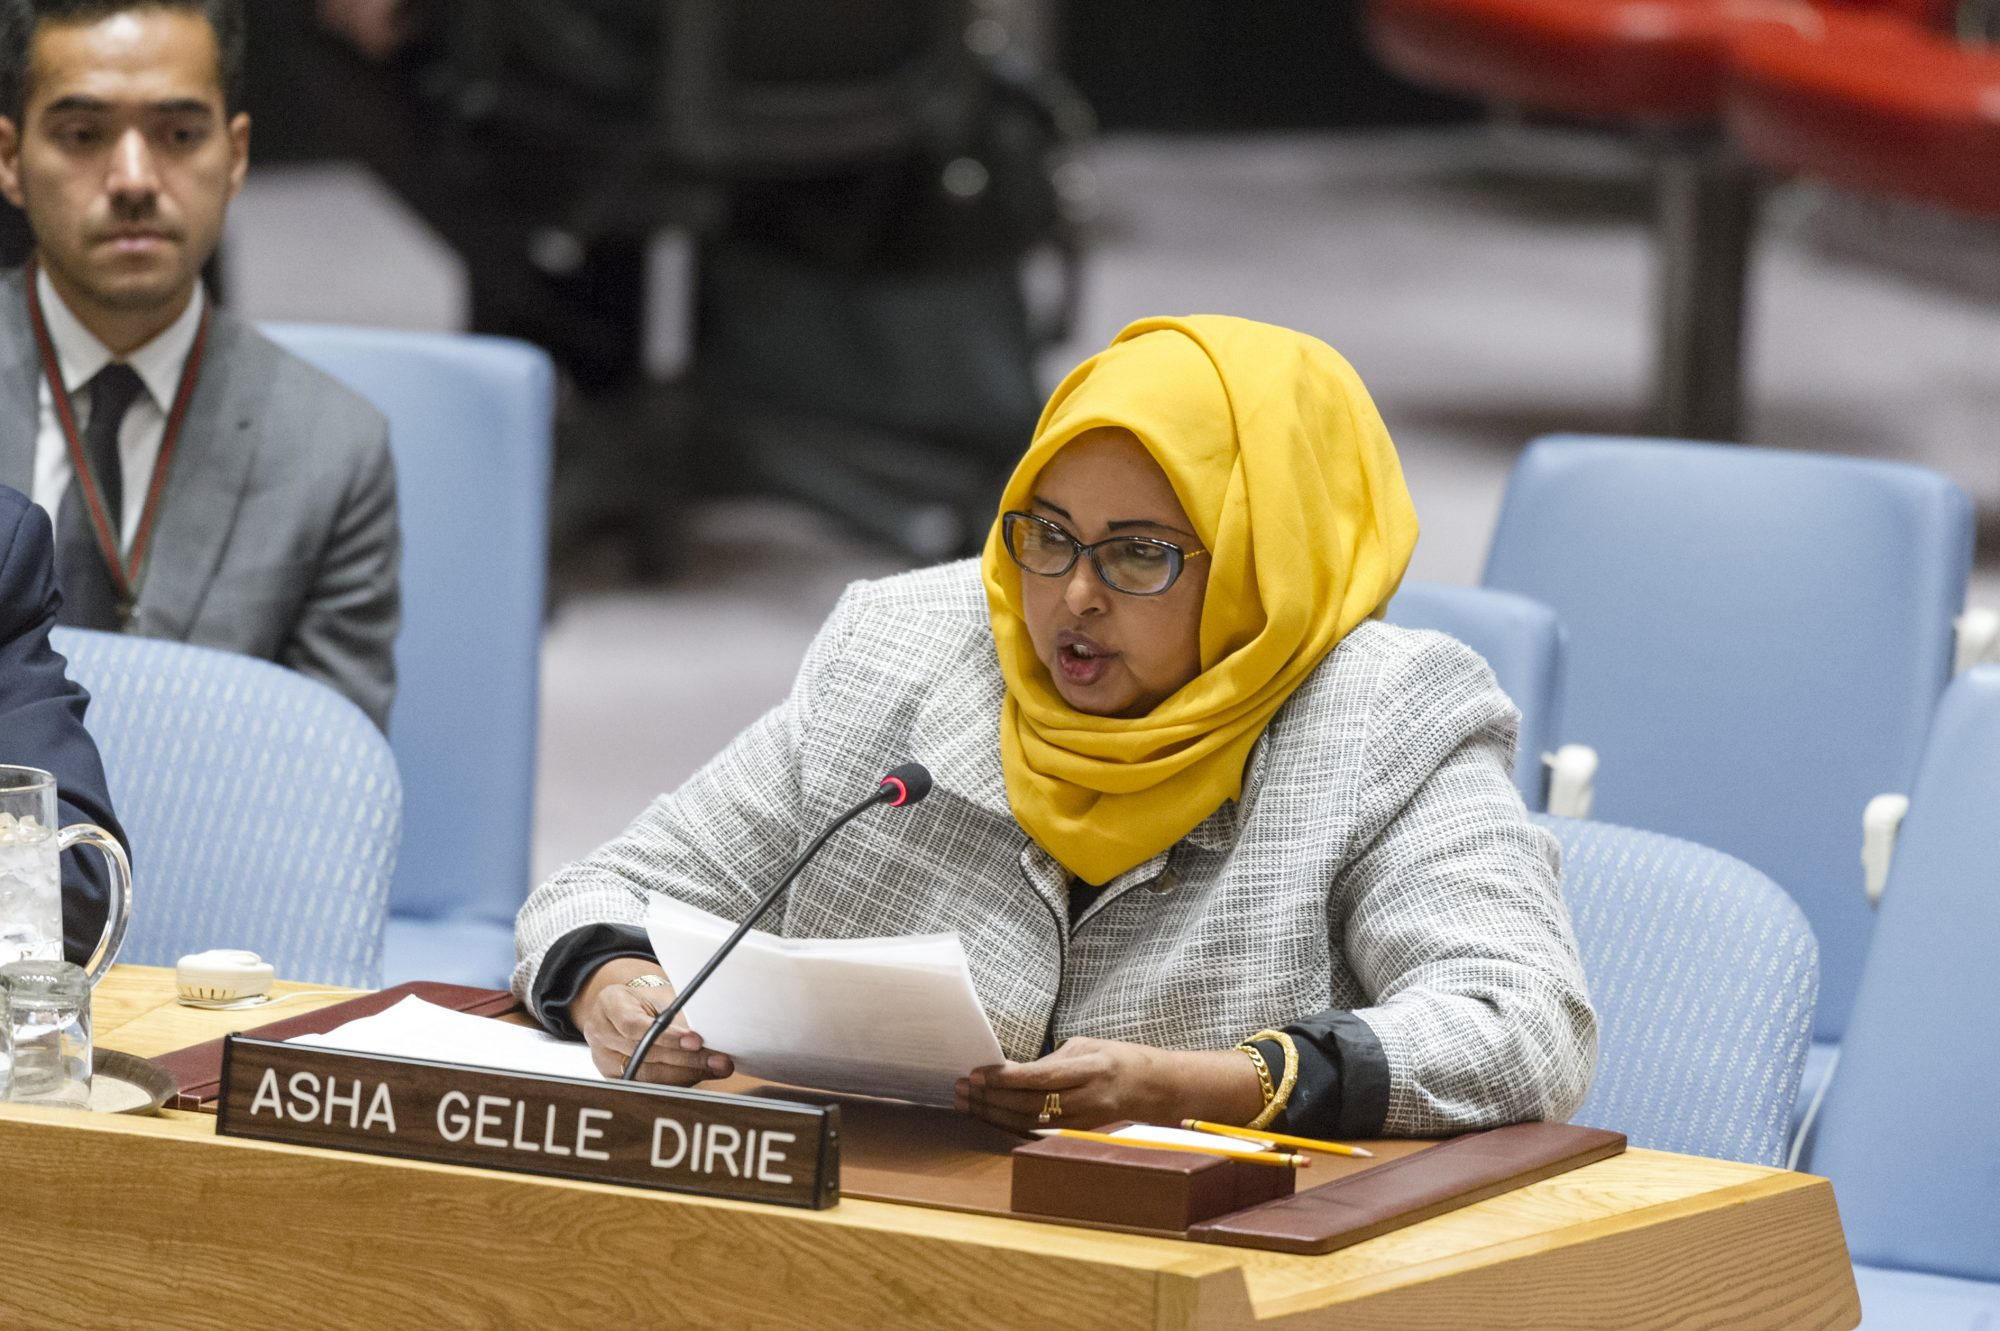 UN Security Council Briefing on Somalia by Asha Gelle Dirie